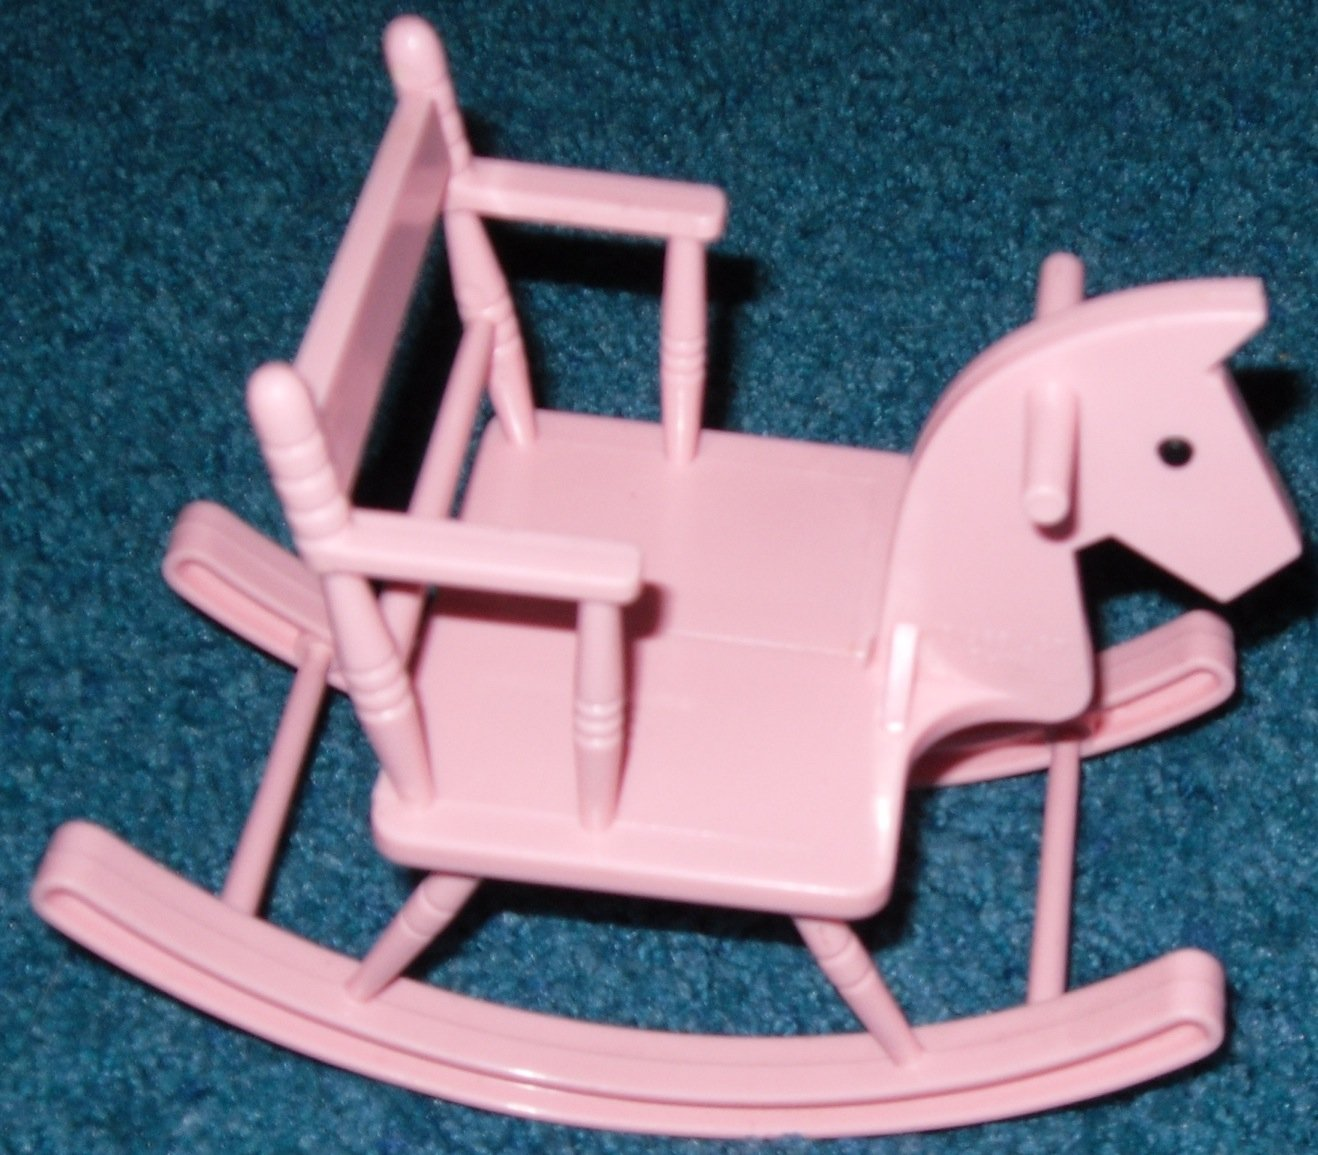 sex chairs suppliers chair accessories in chennai baby doll rocking horse galoob bouncing kids